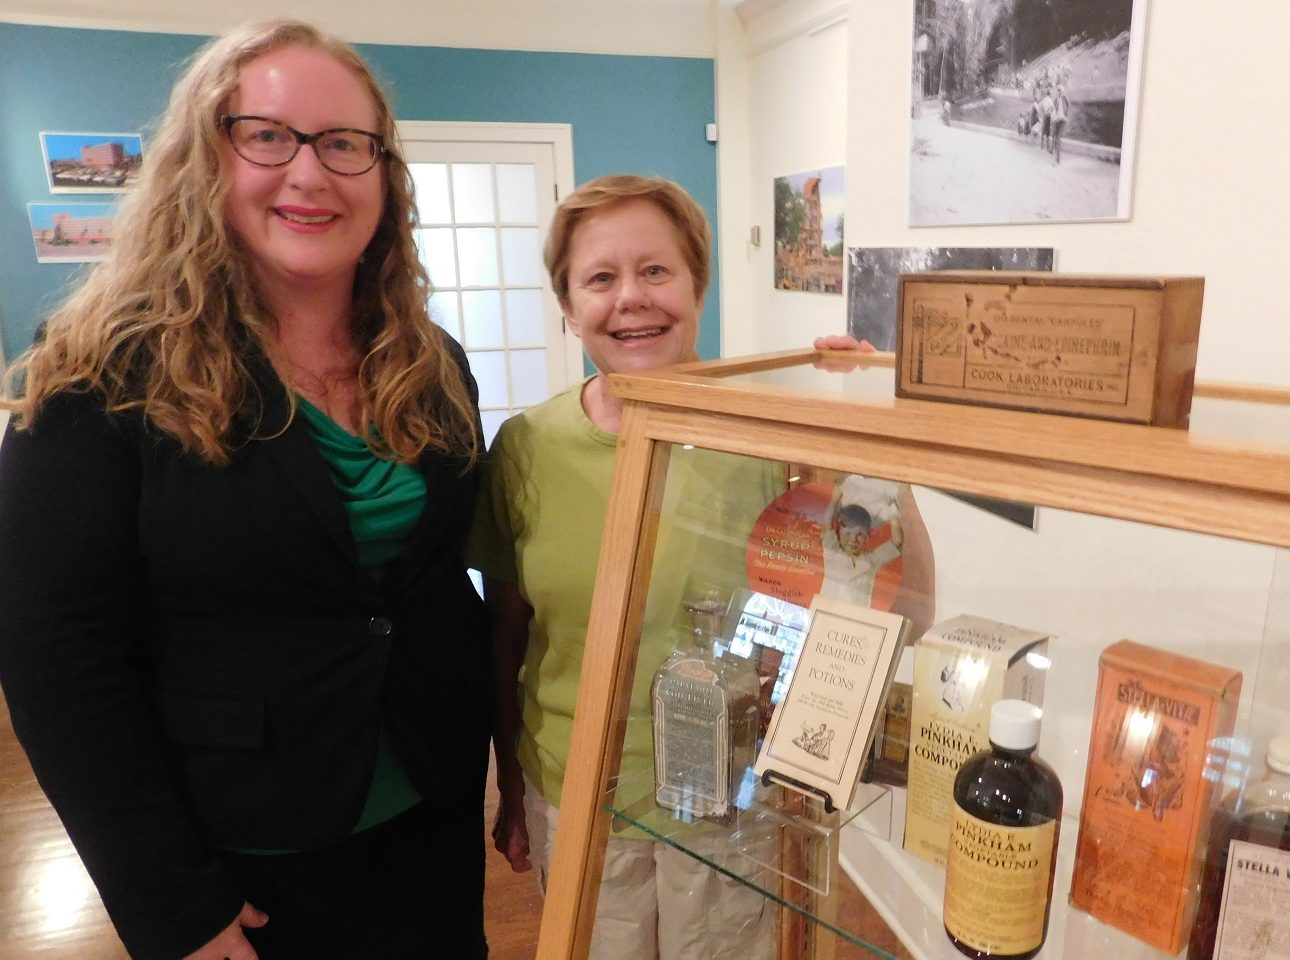 Matheson Museum Executive Director Peggy Macdonald and museum board member Mae Clark in front of a display case that is part of the Medical Milestones exhibit. )Photo by Gainesville Downtown)